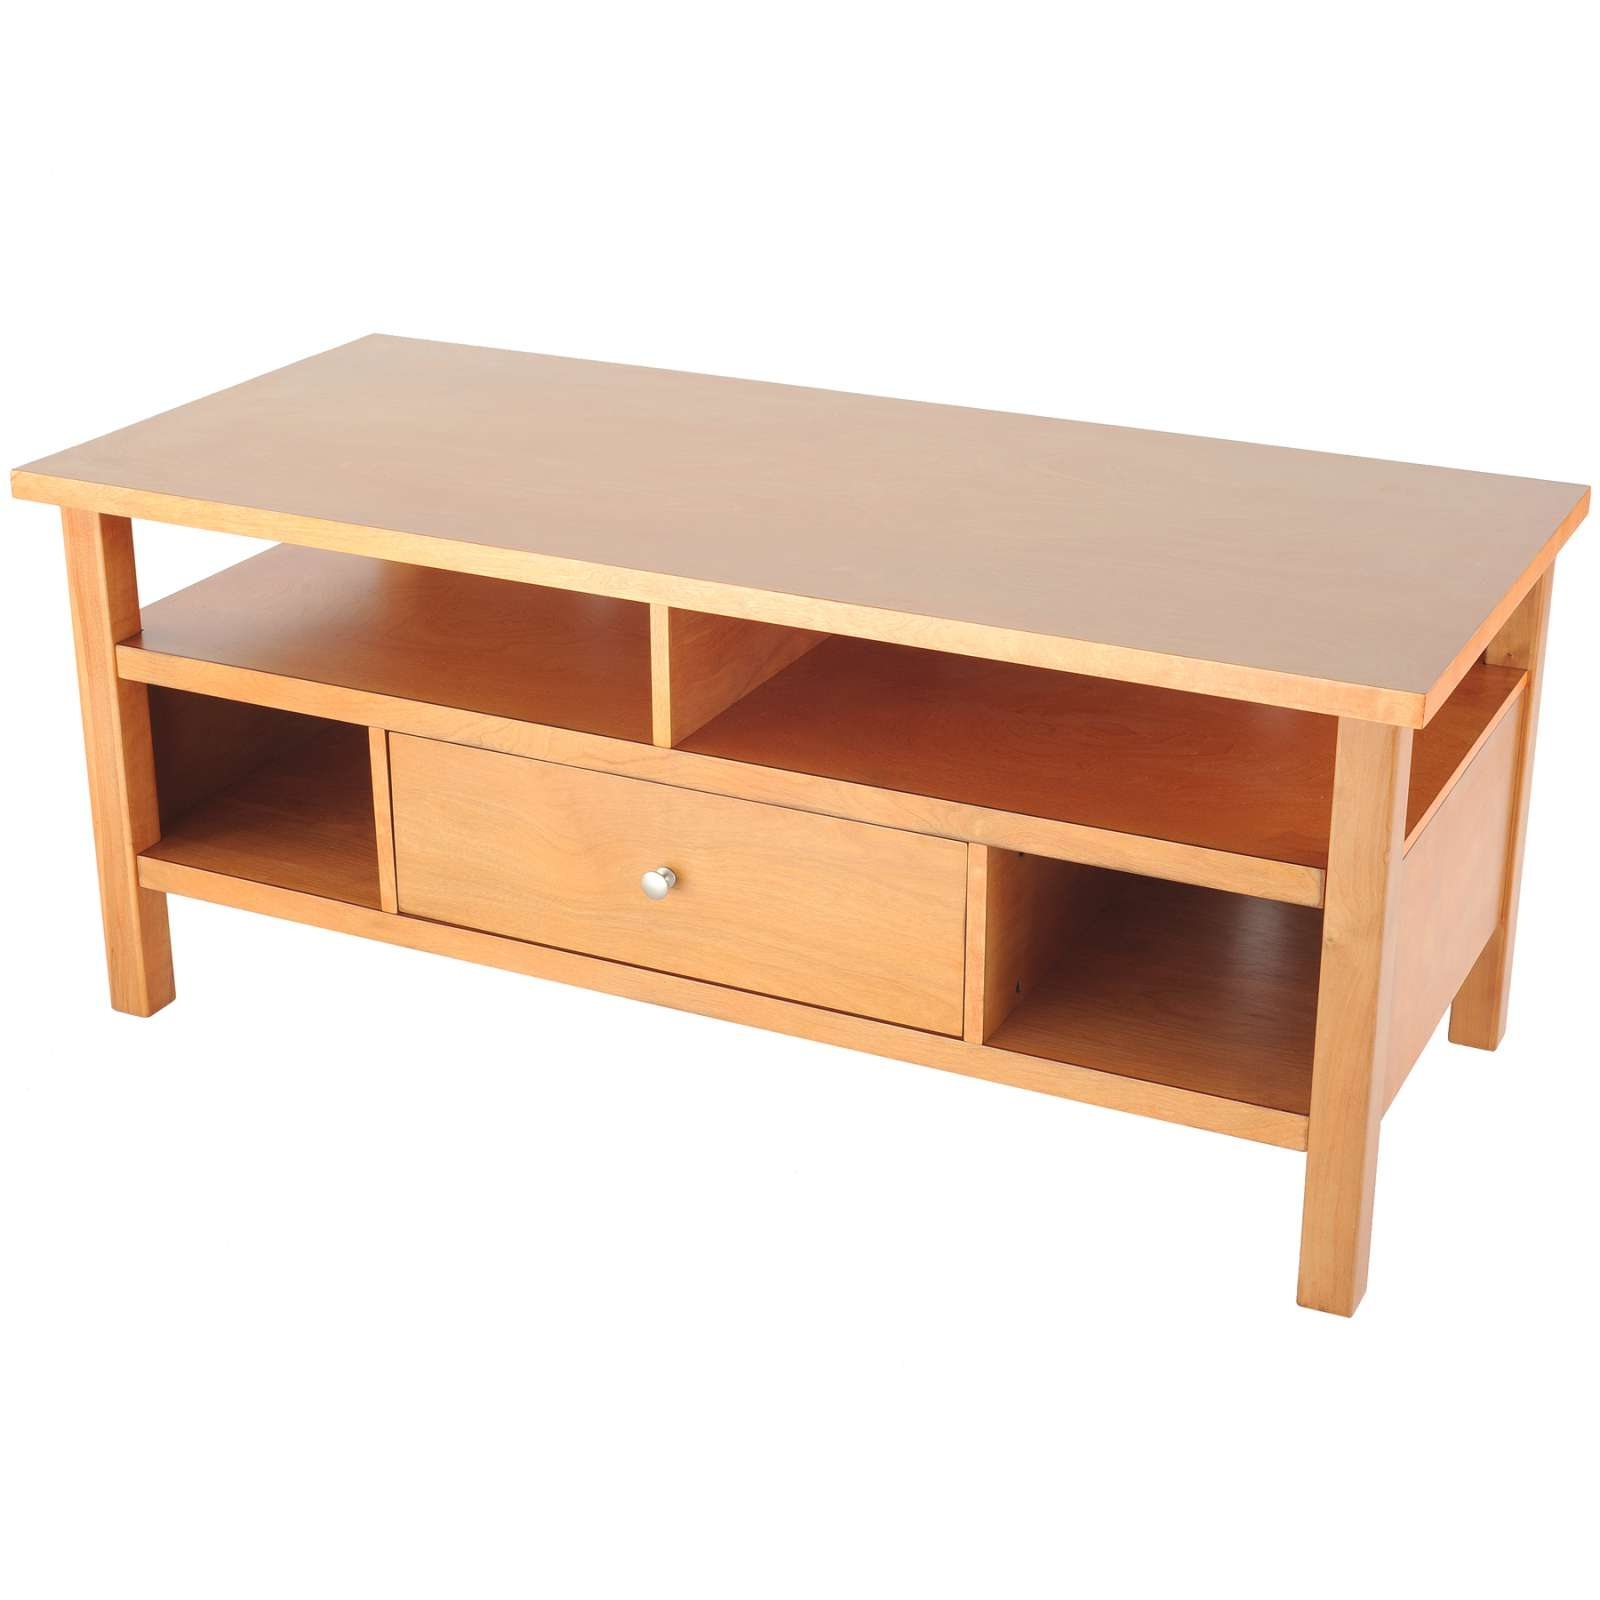 Well Known Why Maple Tv Stand Is One Of The Best Options You Should Consider In With Regard To Maple Tv Stands (View 19 of 20)